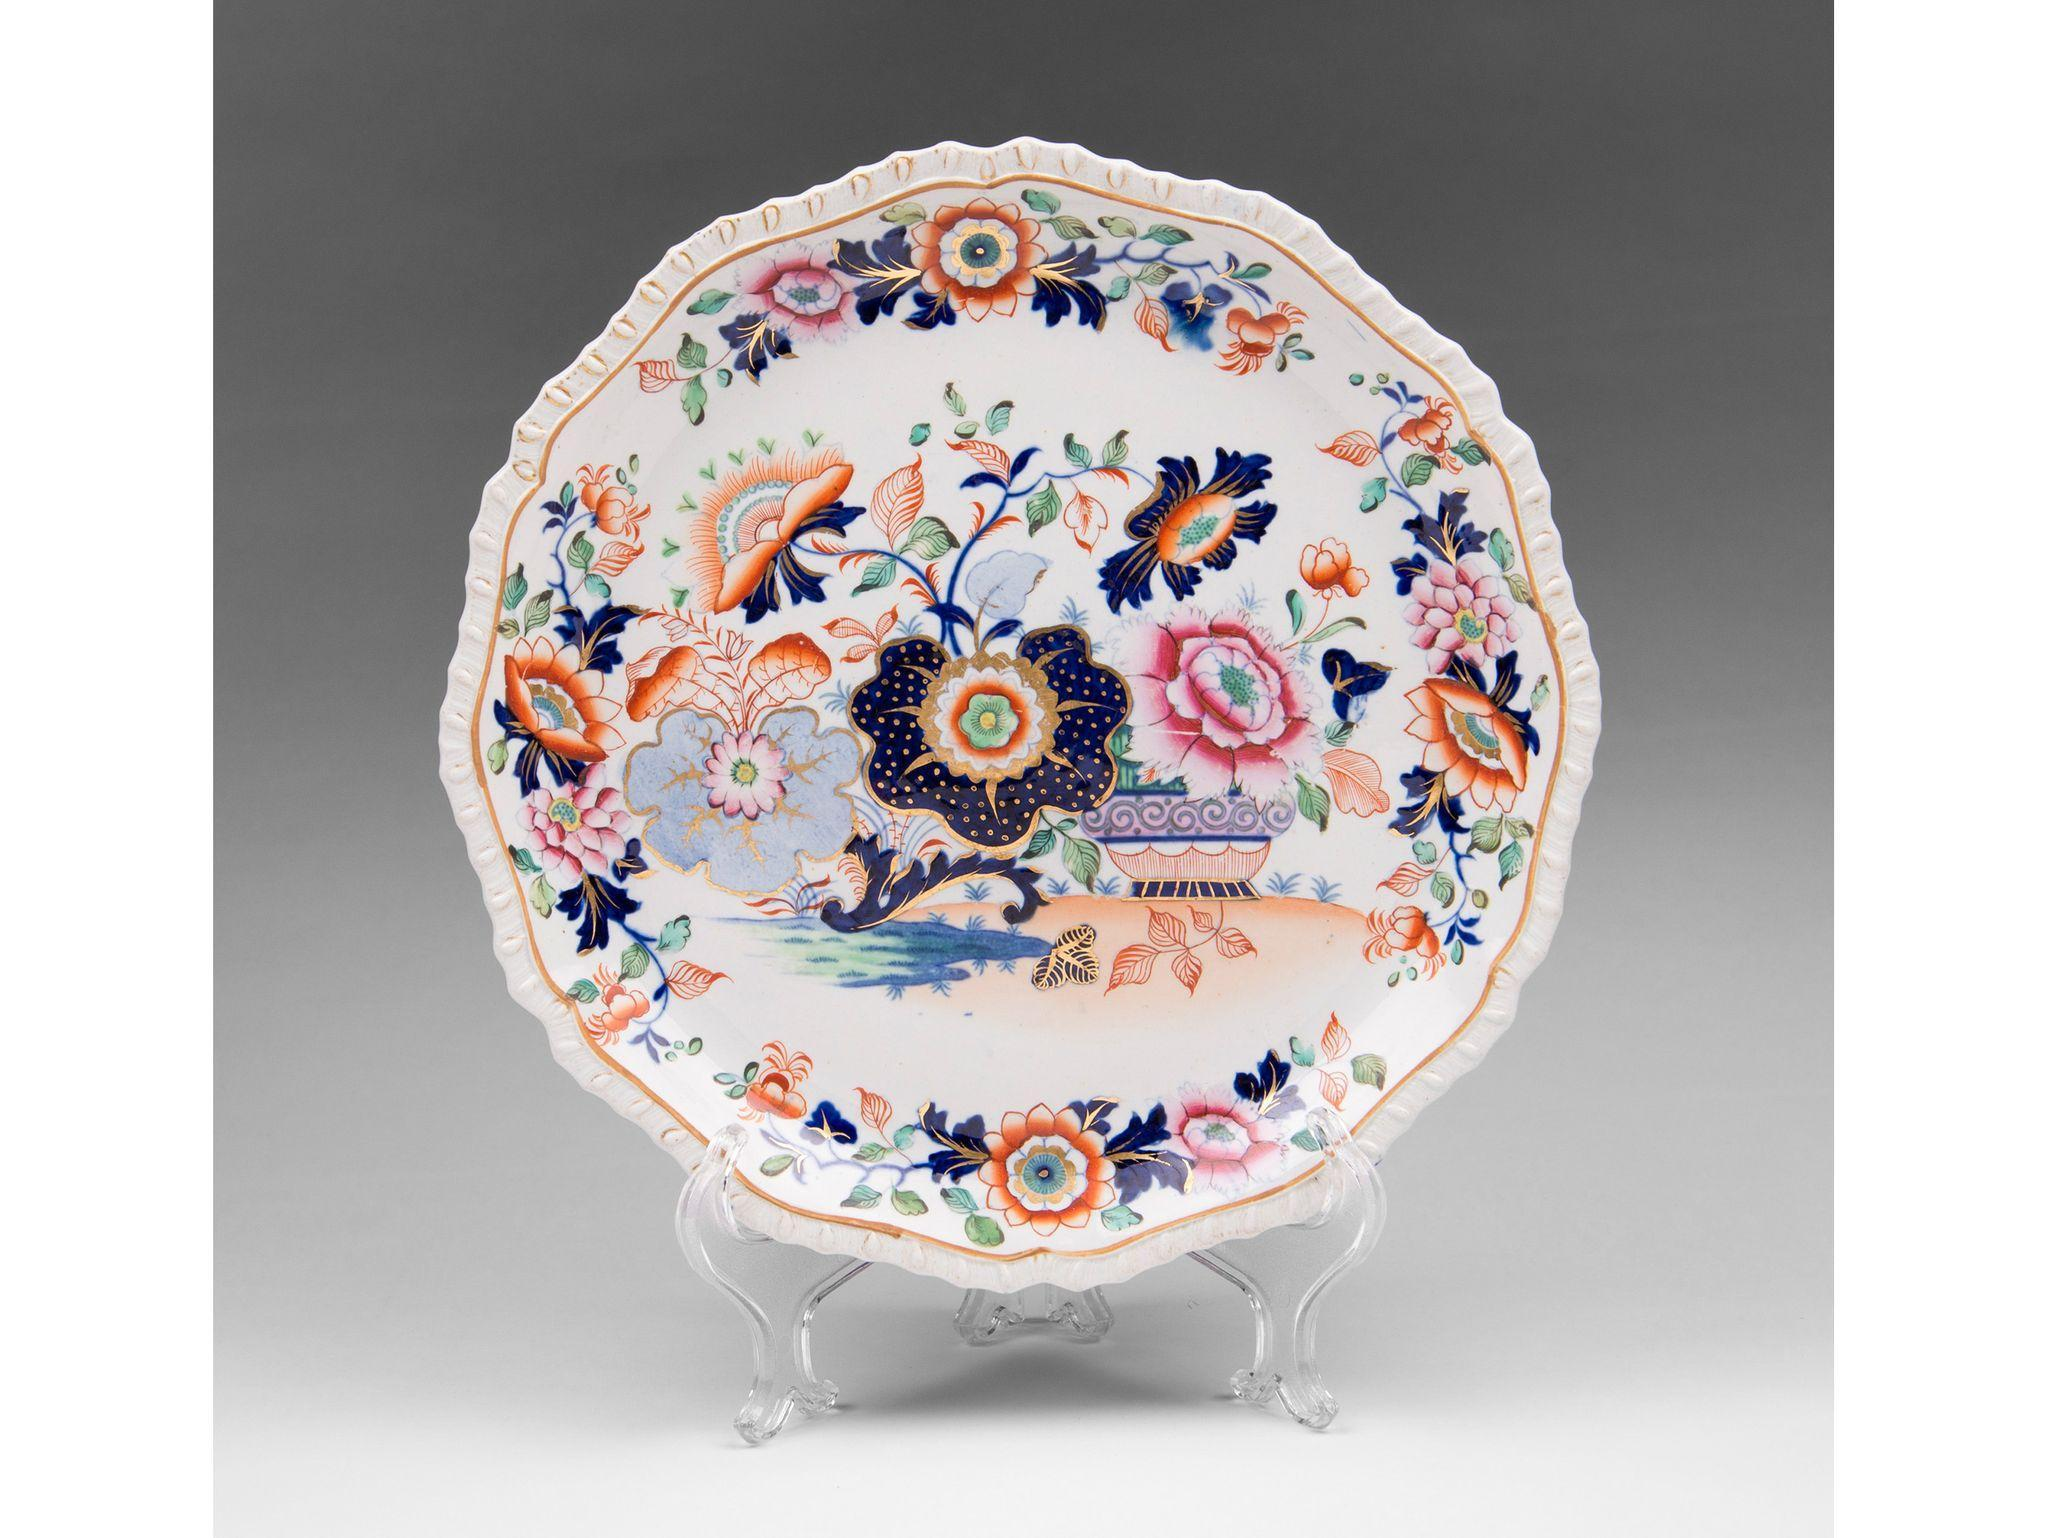 Rare Early 19th C. Hicks & Meigh Imari Cake Stand